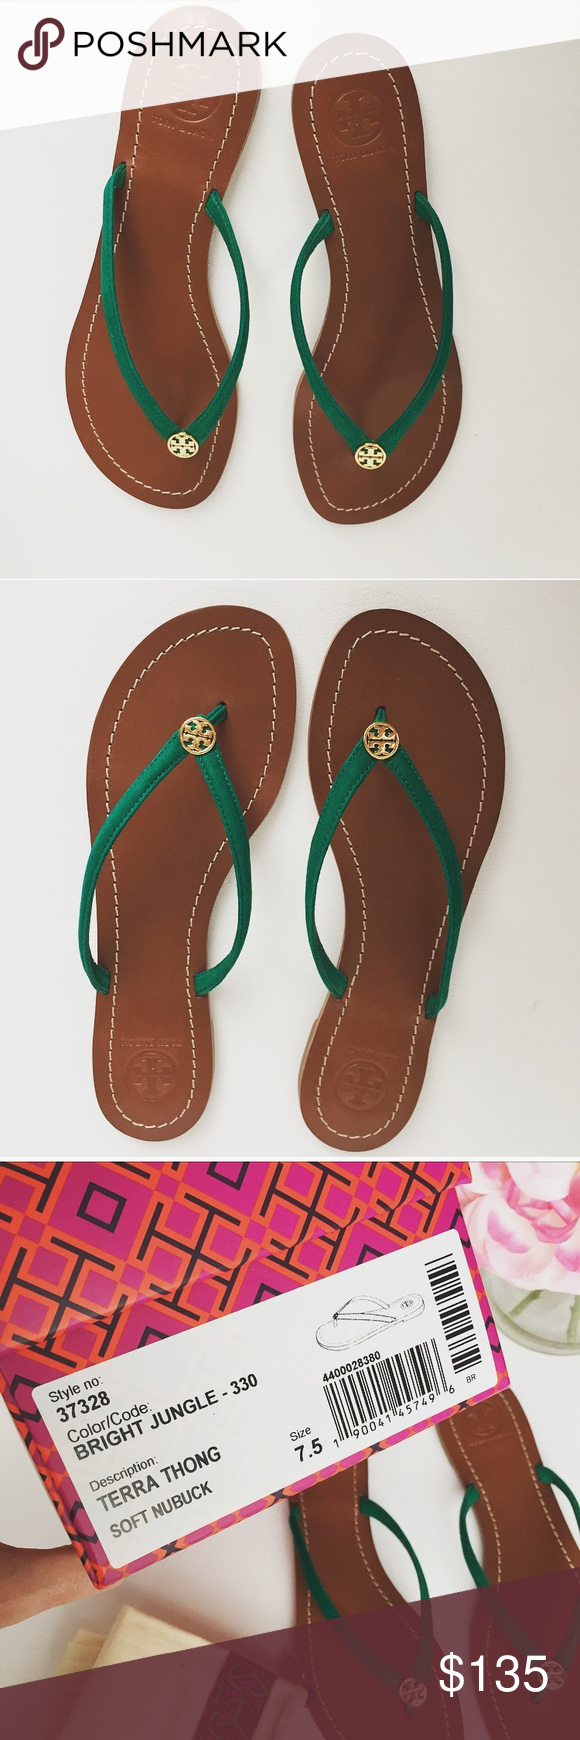 348451014470 New Tory Burch Bright Jungle Nubuck Terra Sandals A polished logo medallion  tops a stylishly casual